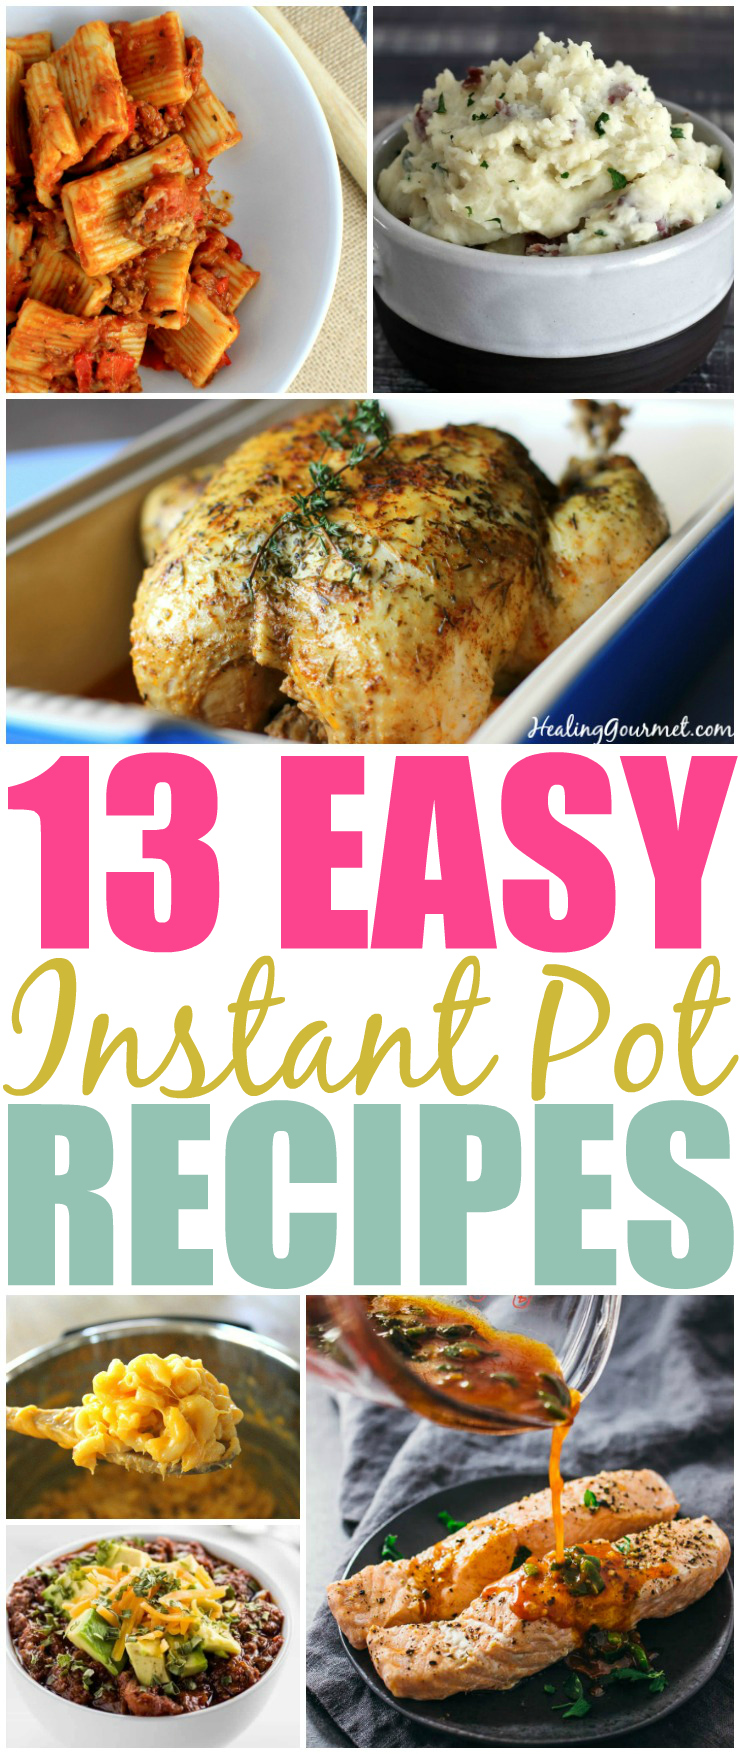 13 Easy Instant Pot Recipes For Beginners